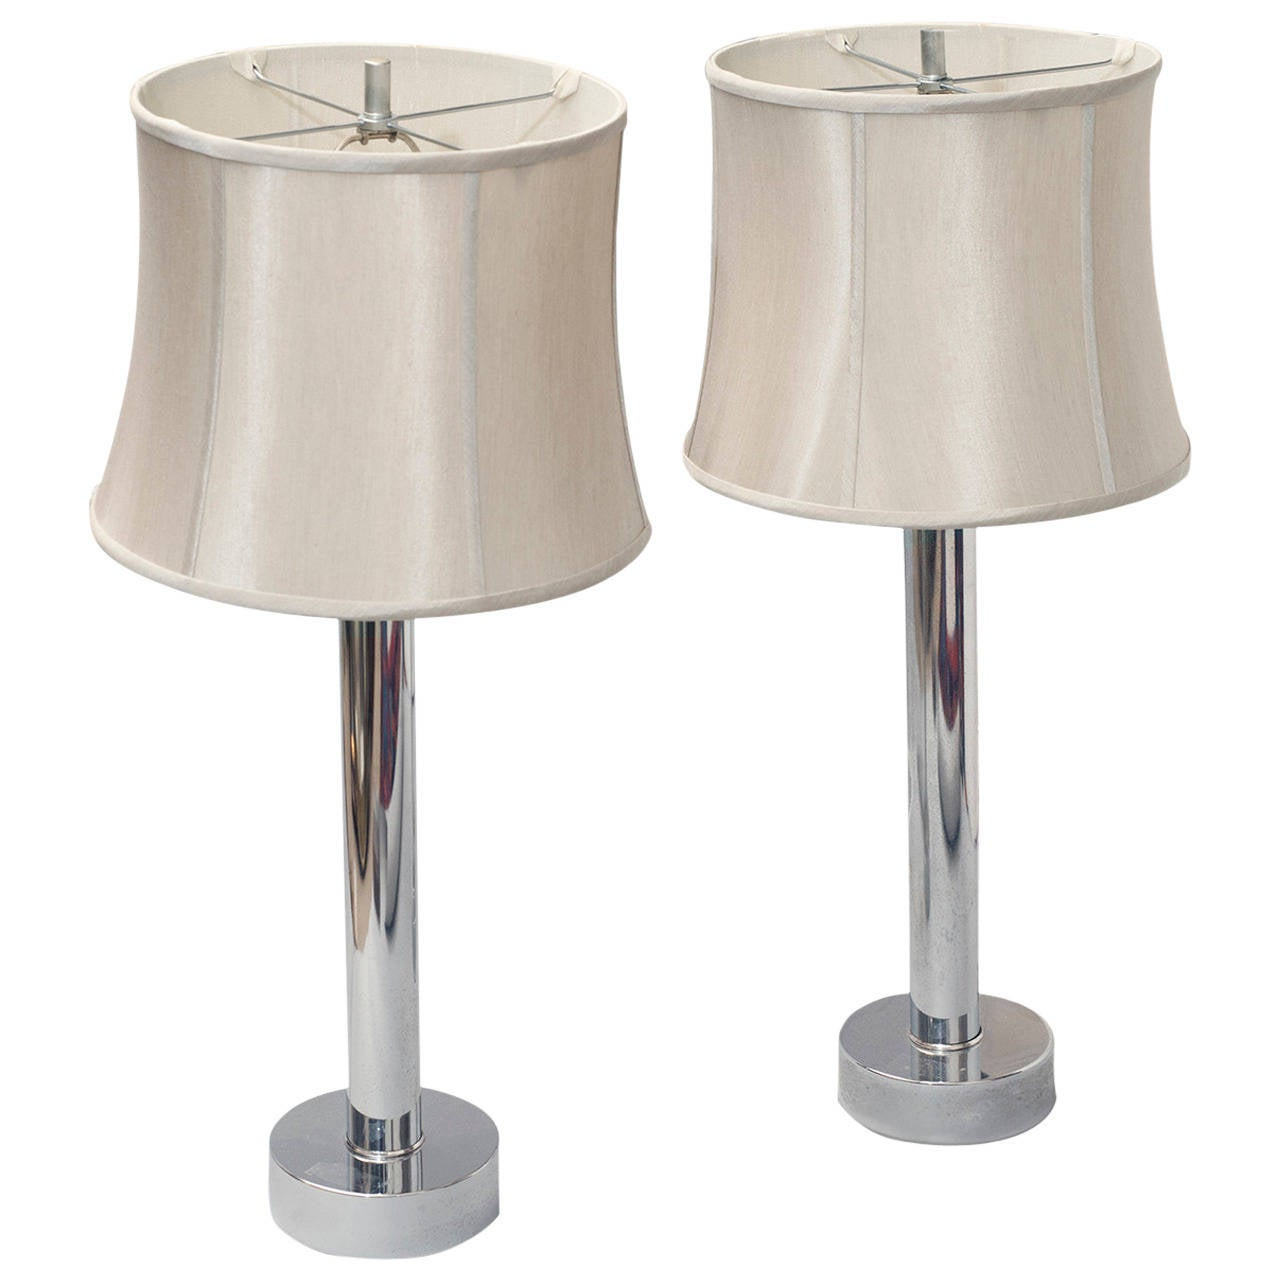 pair of mid century modern chrome table lamps for sale at 1stdibs. Black Bedroom Furniture Sets. Home Design Ideas